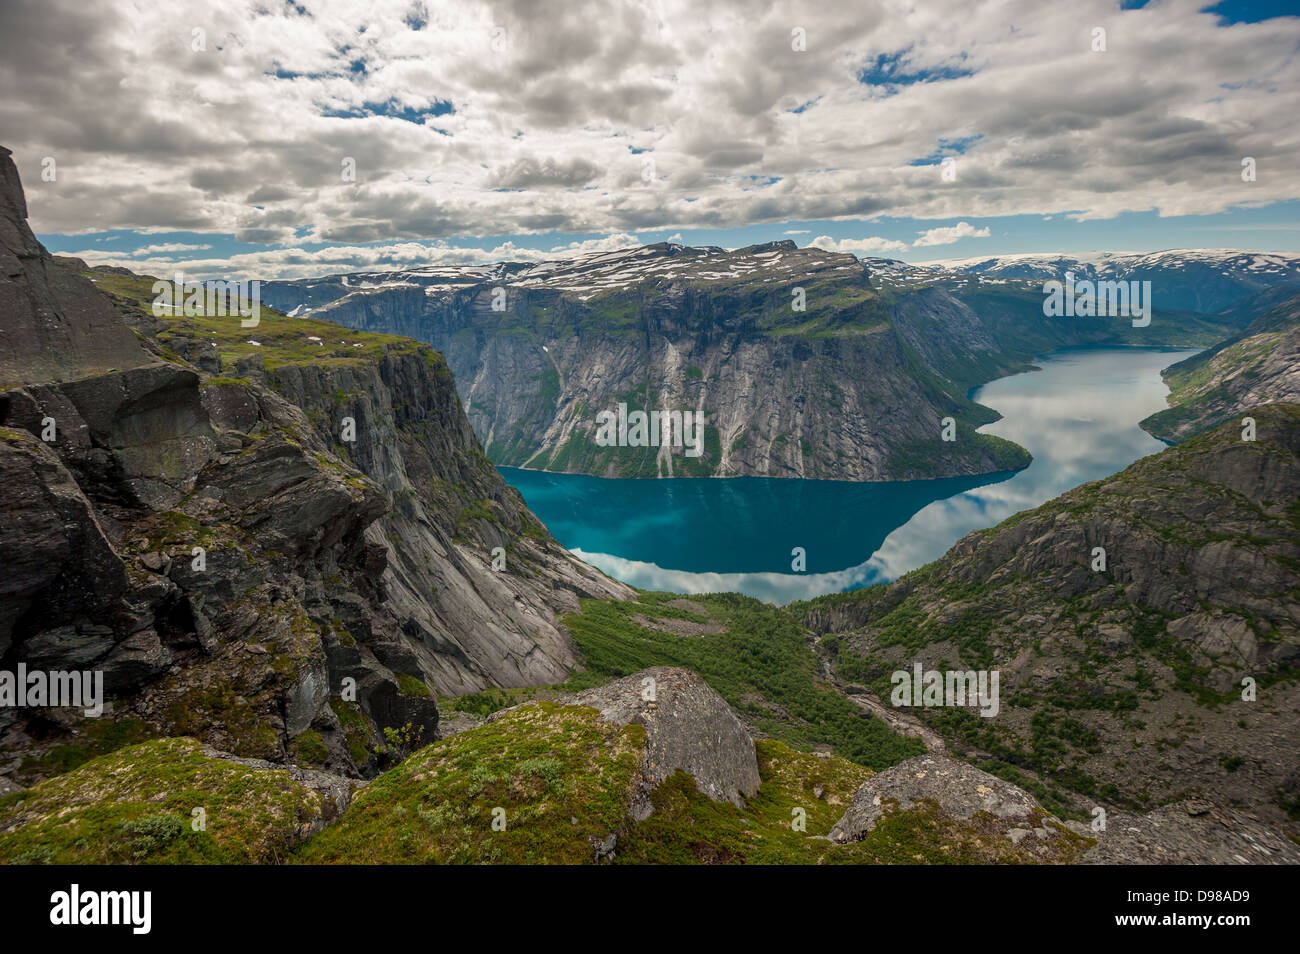 View of lake Ringedalsvatnet, Norway - Stock Image